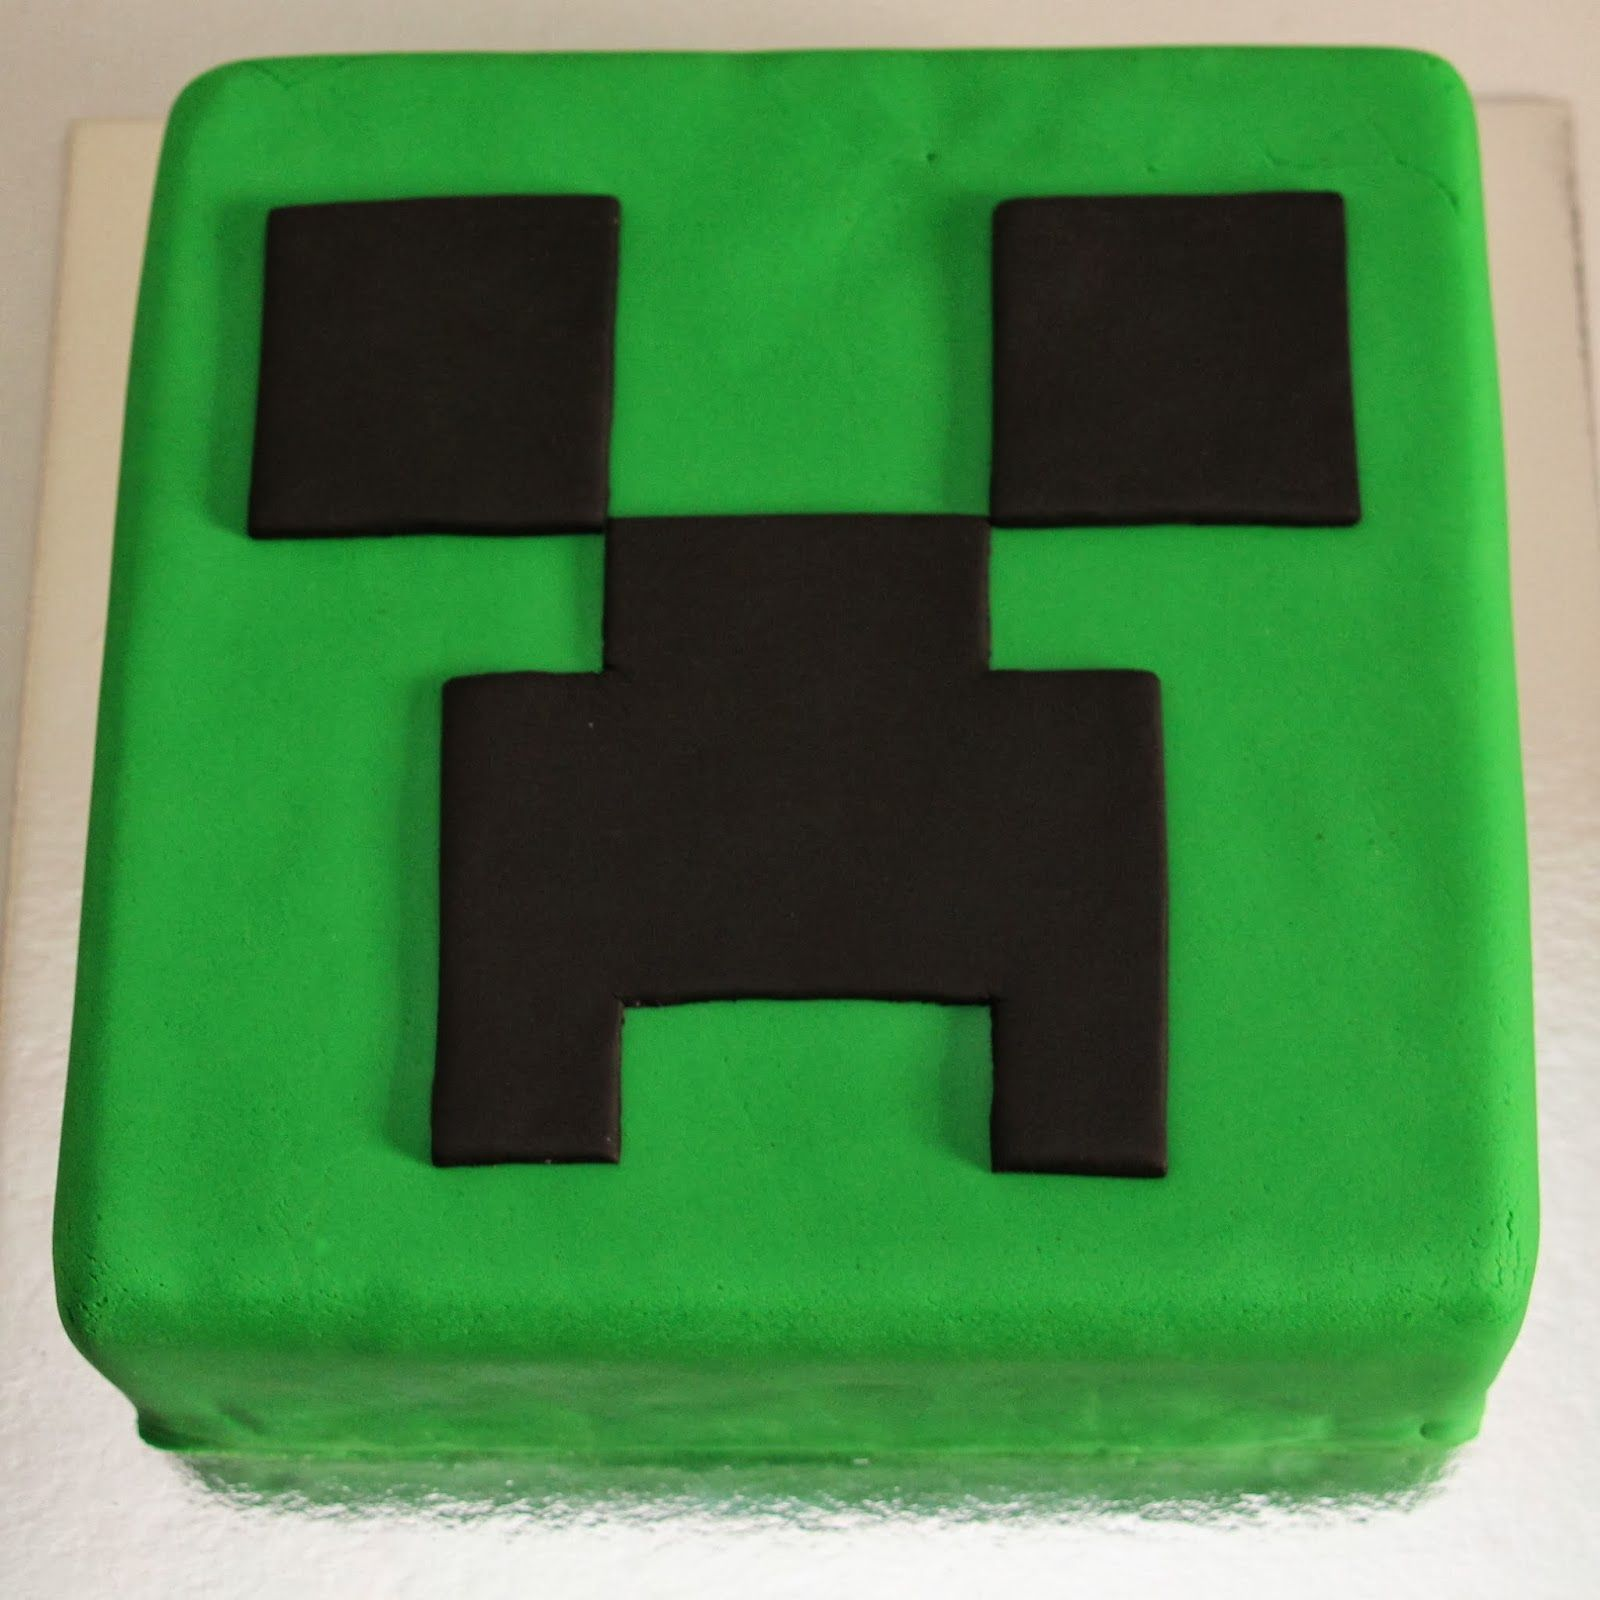 Minecraft Quot Creeper Quot Cake Created Creatively